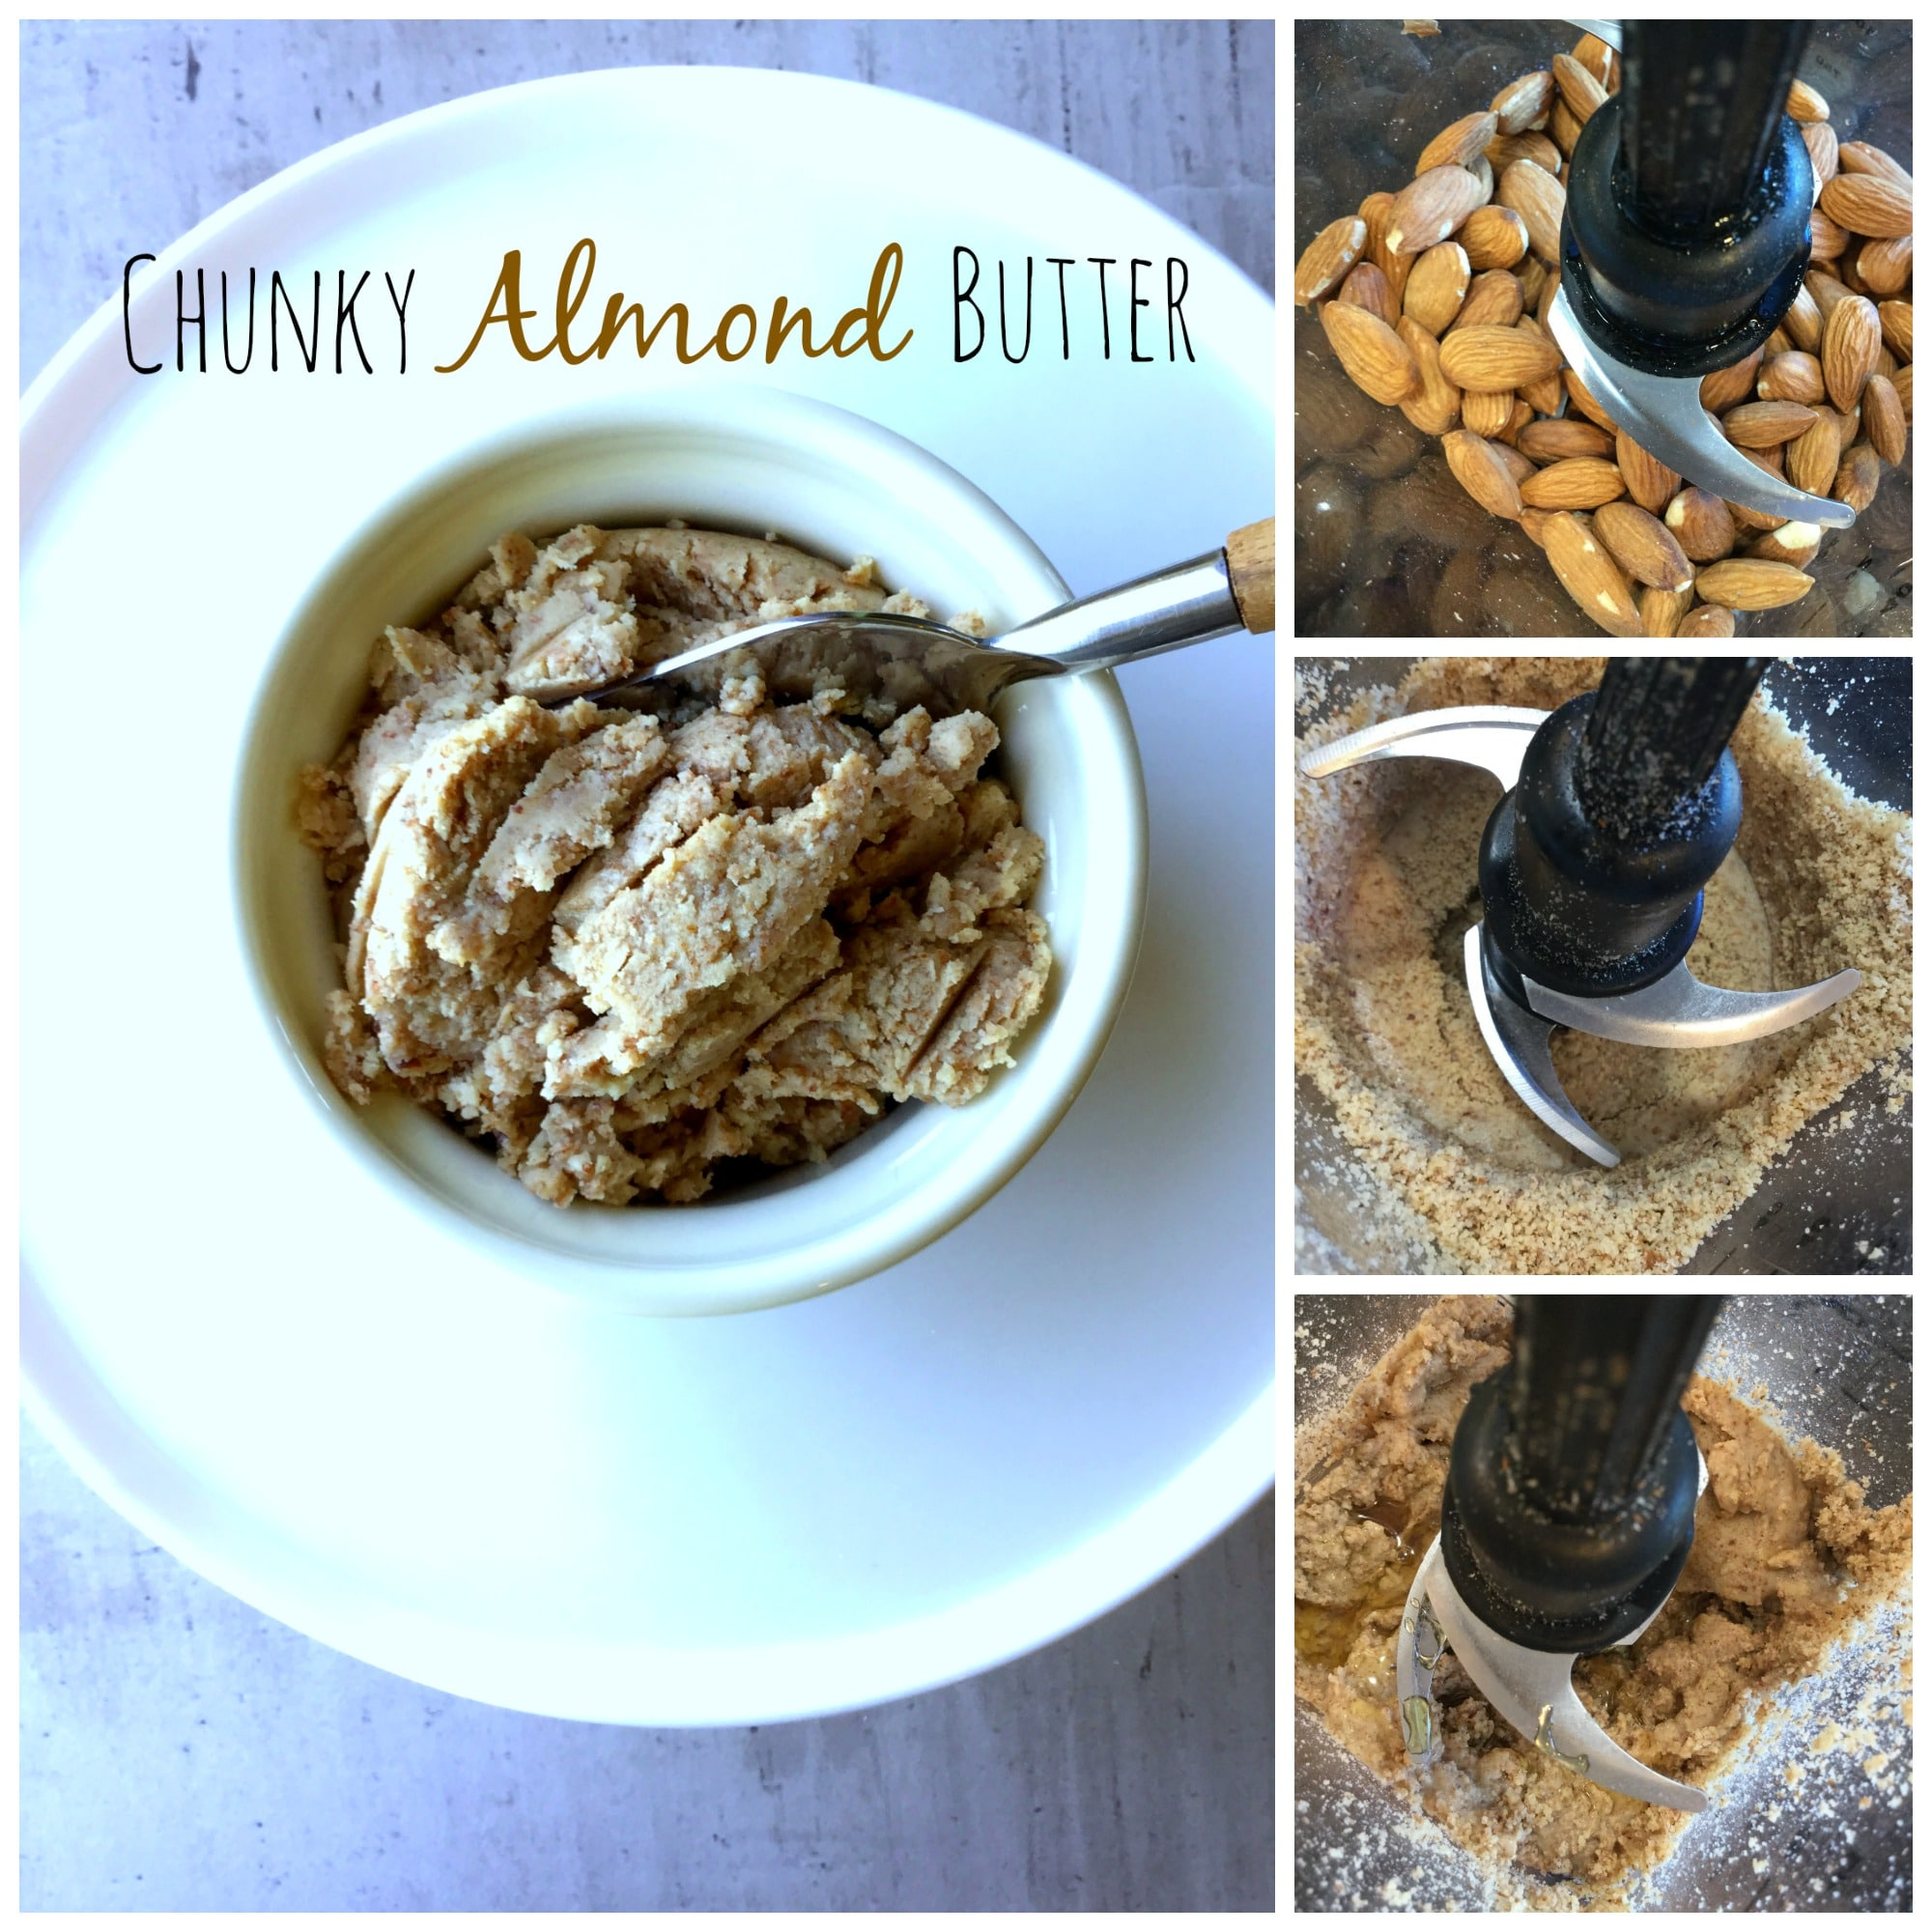 This homemade Almond Butter is a great way to add extra protein to your diet.